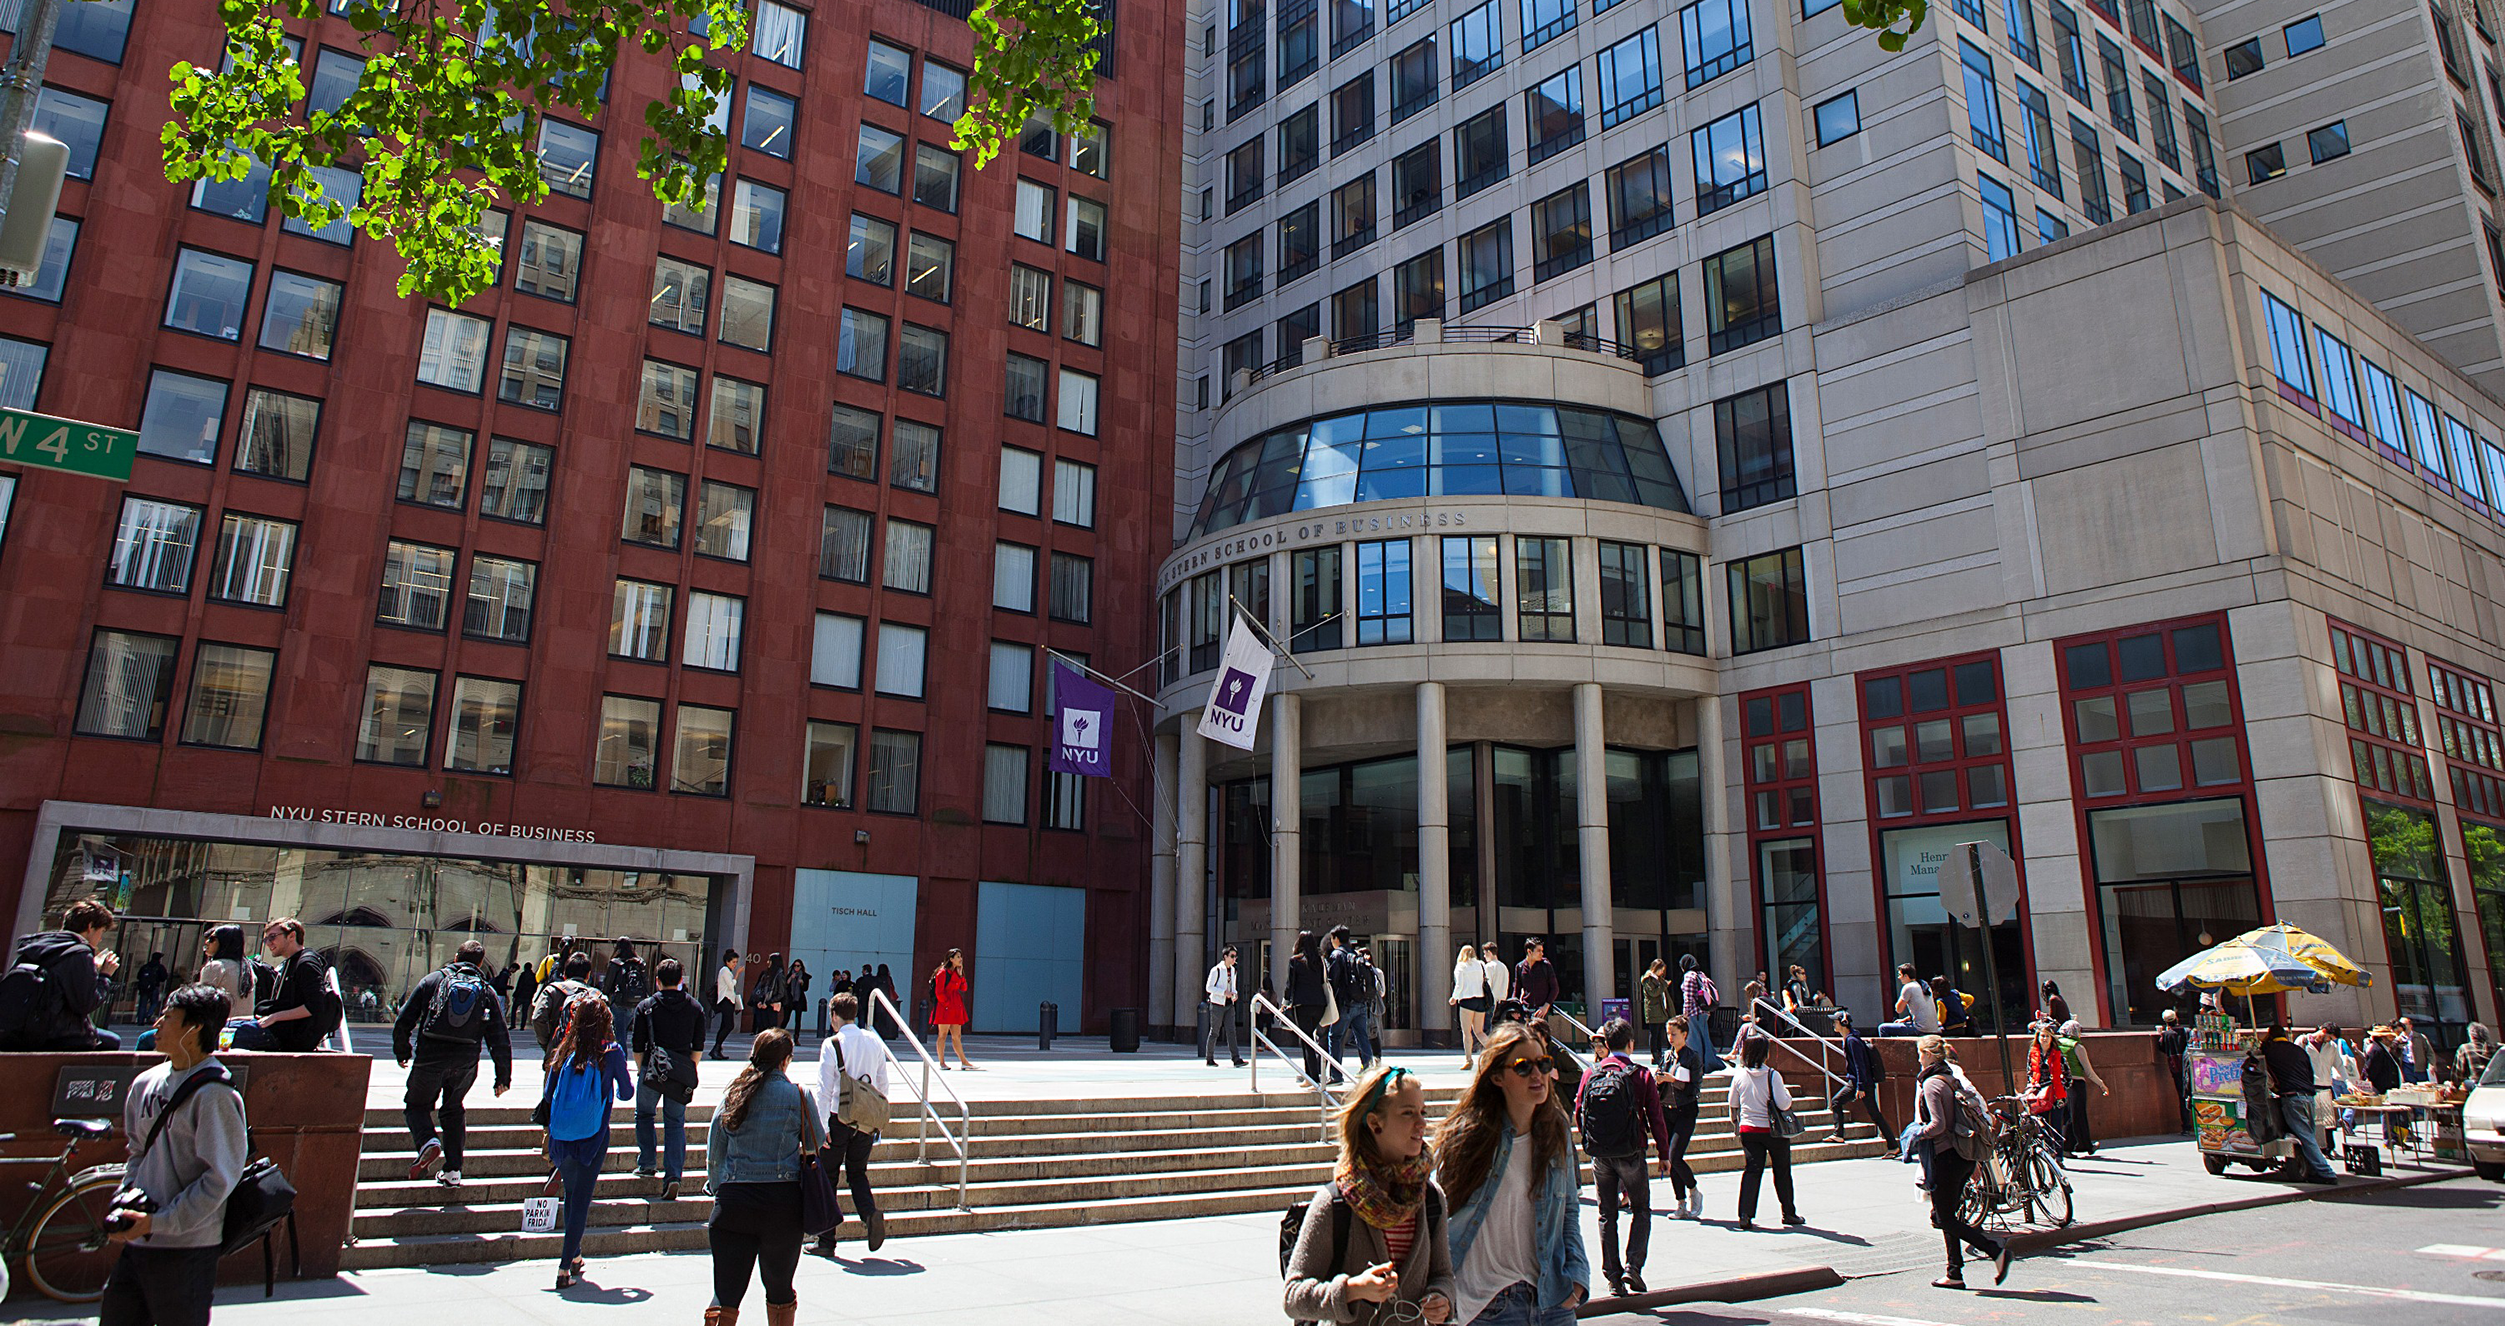 NYU Stern's Kaufman Management Center building and Gould Plaza